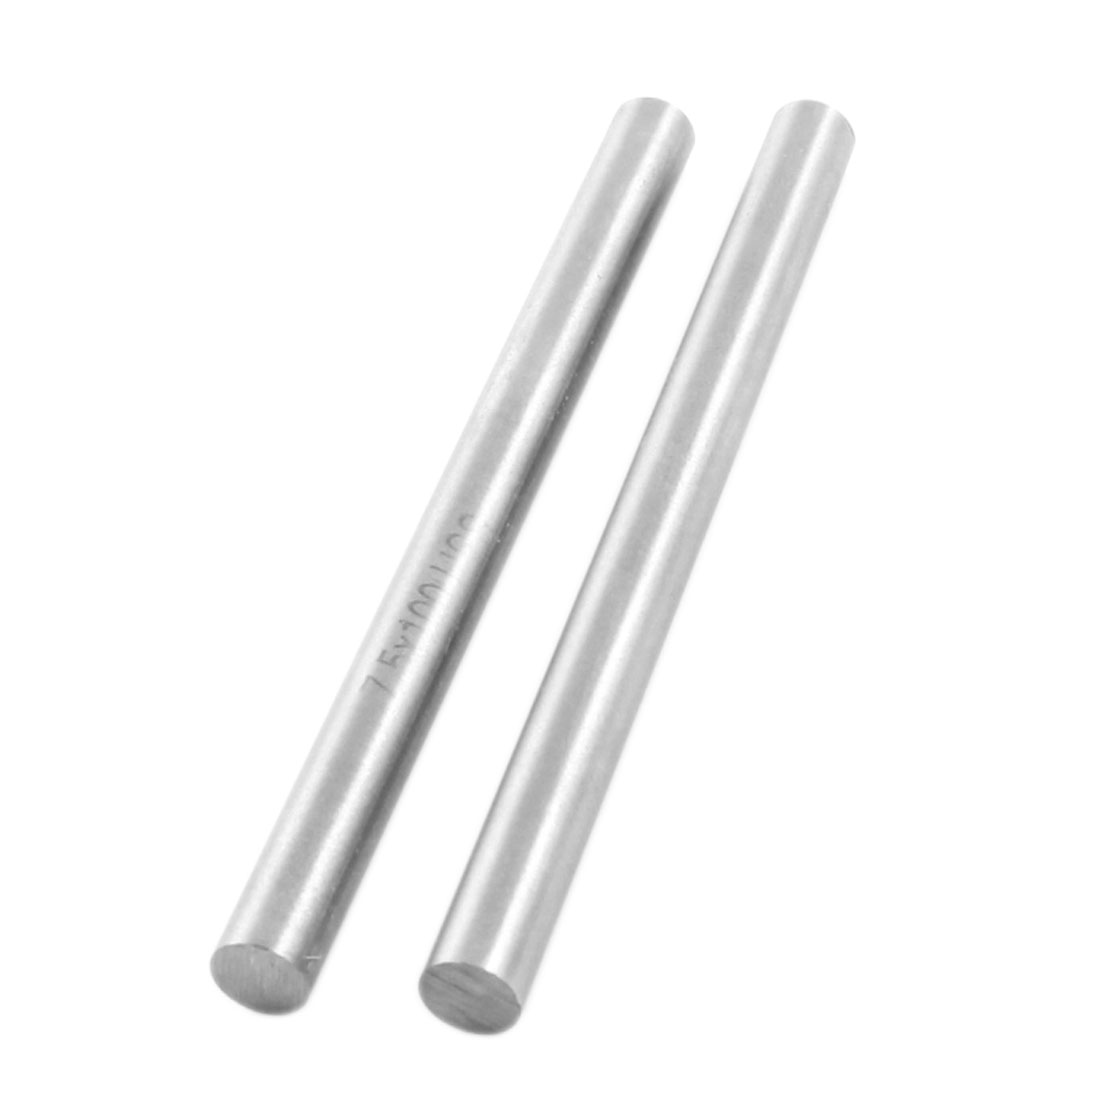 2Pcs 7.5mm x 100mm Silver Tone HHS Straight Machine Turning Tool Round Lathe Stick Rod